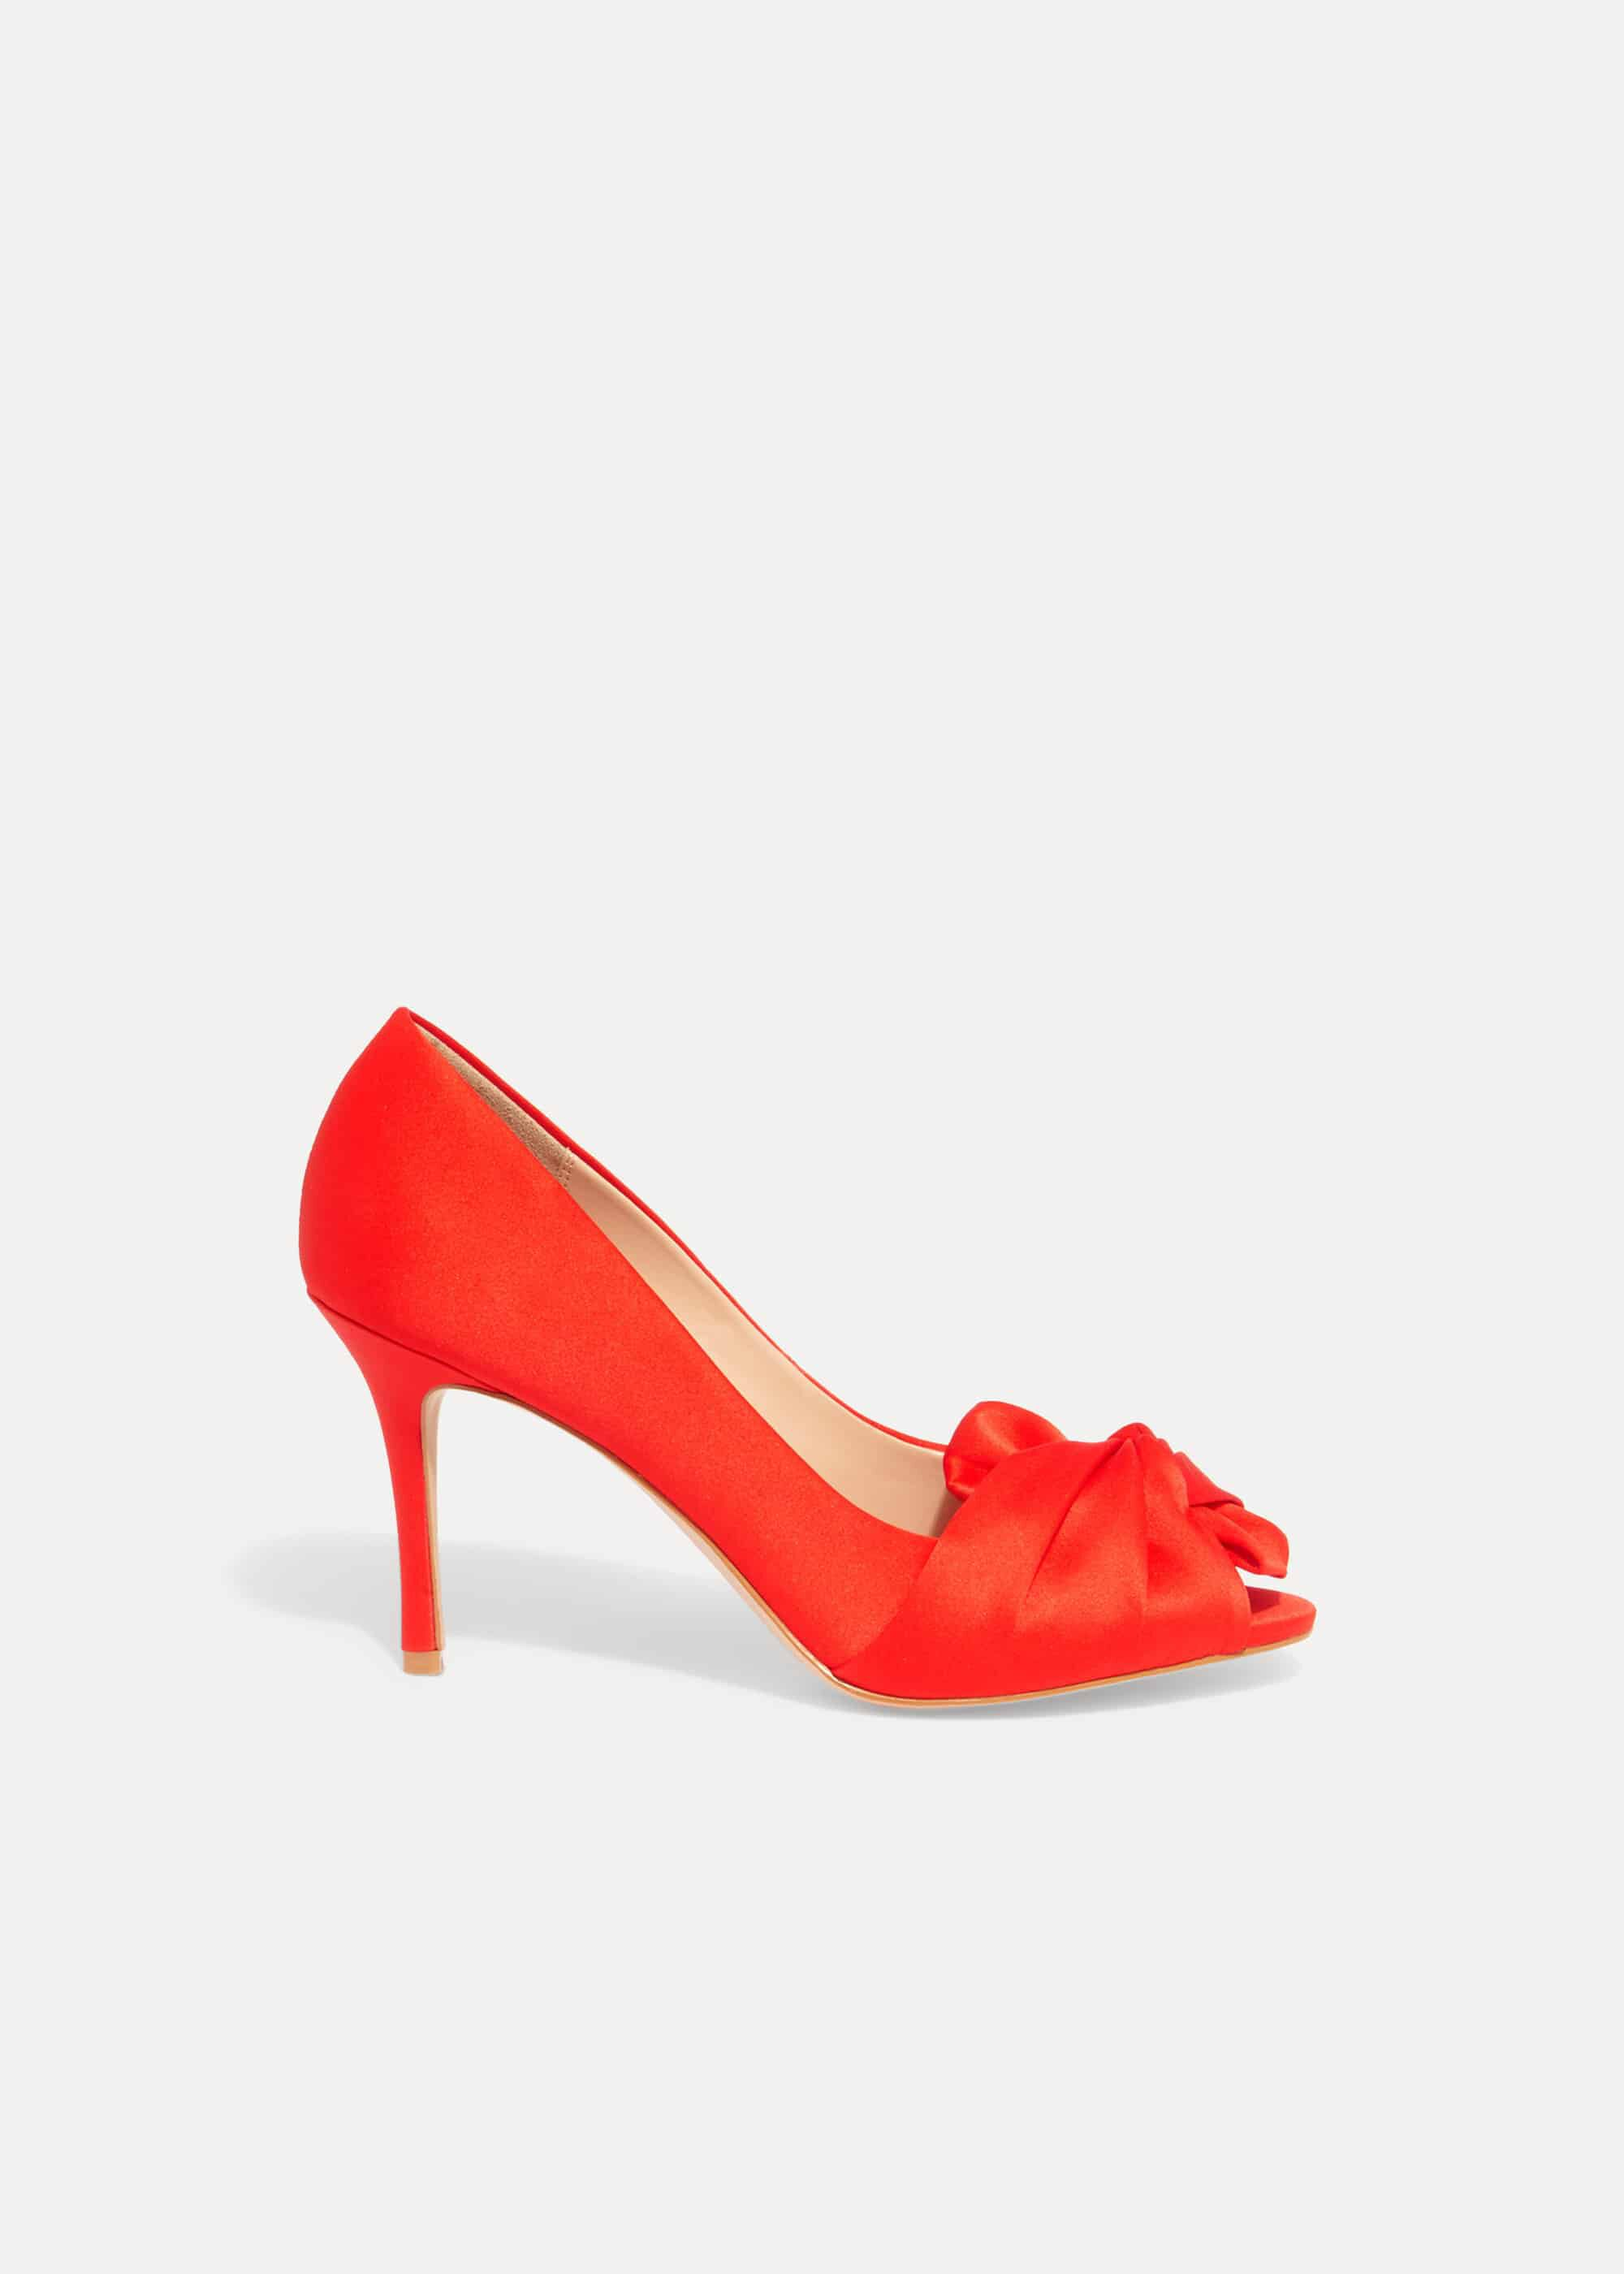 Phase Eight Alice Bow Peep Toe Shoes, Red, Sandals